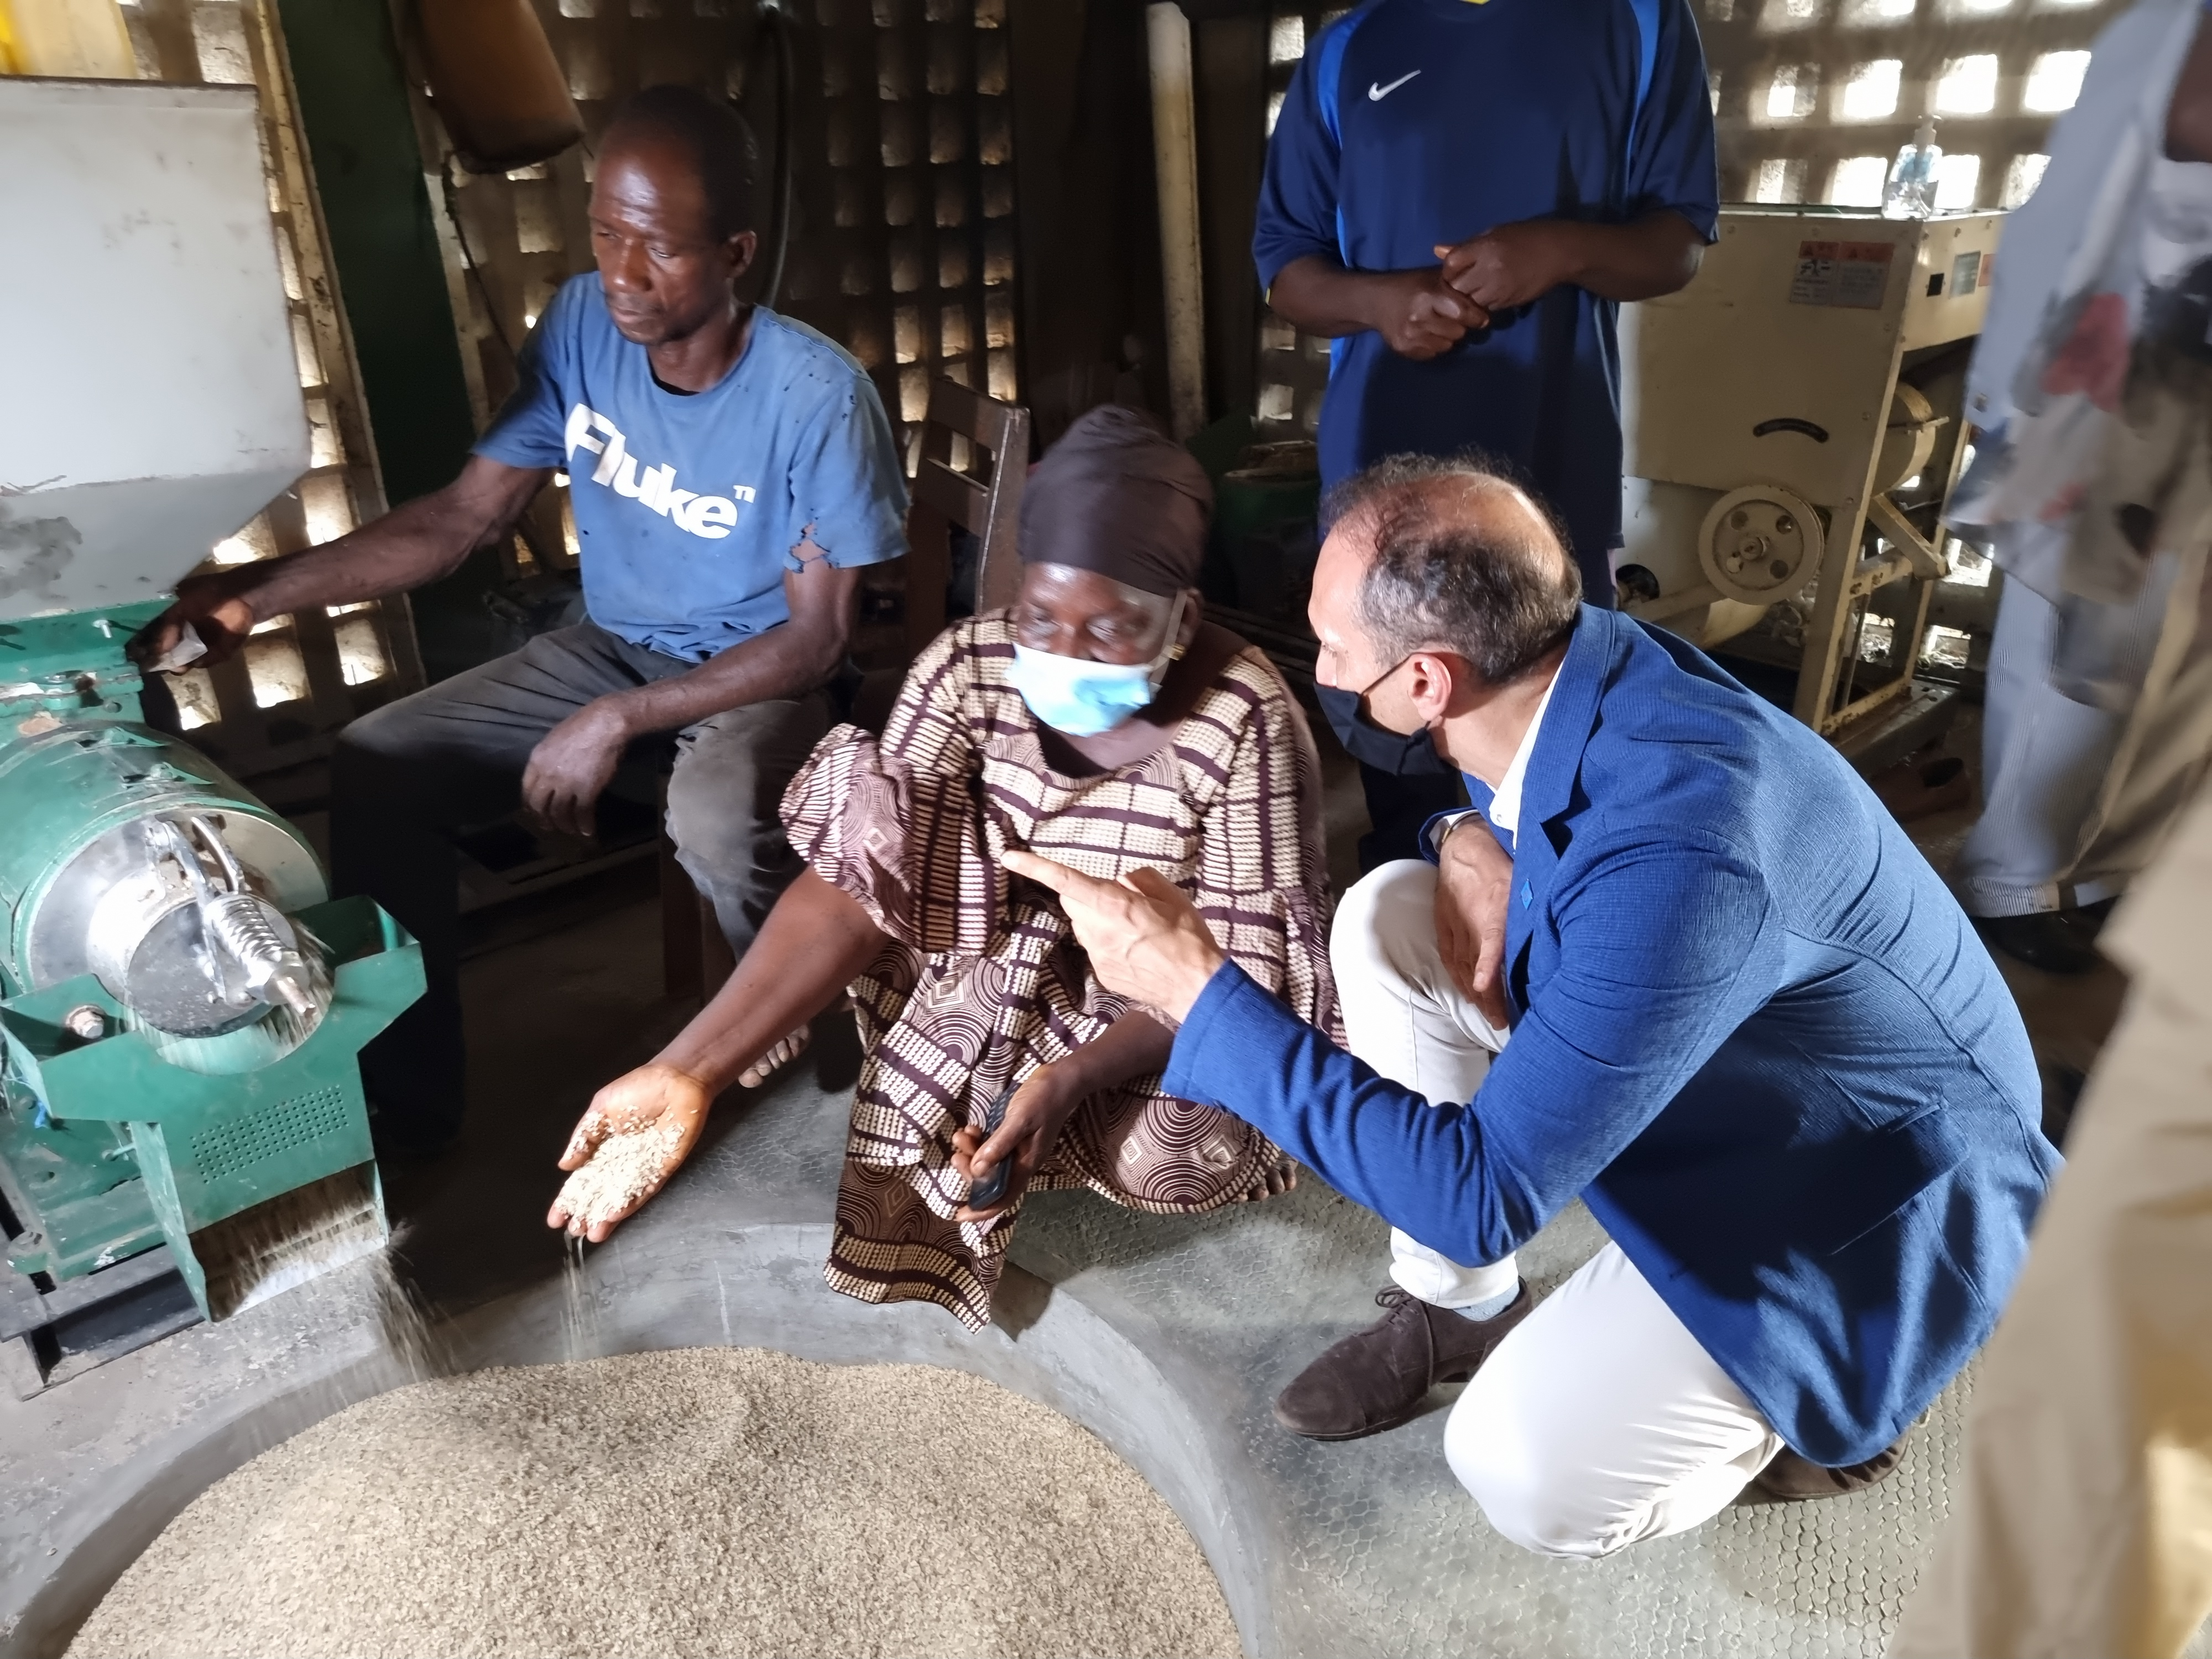 Resident Coordinator, Vincent Martin kneels by a woman community leader as they speak near a machine that is filling a round hole with grains.